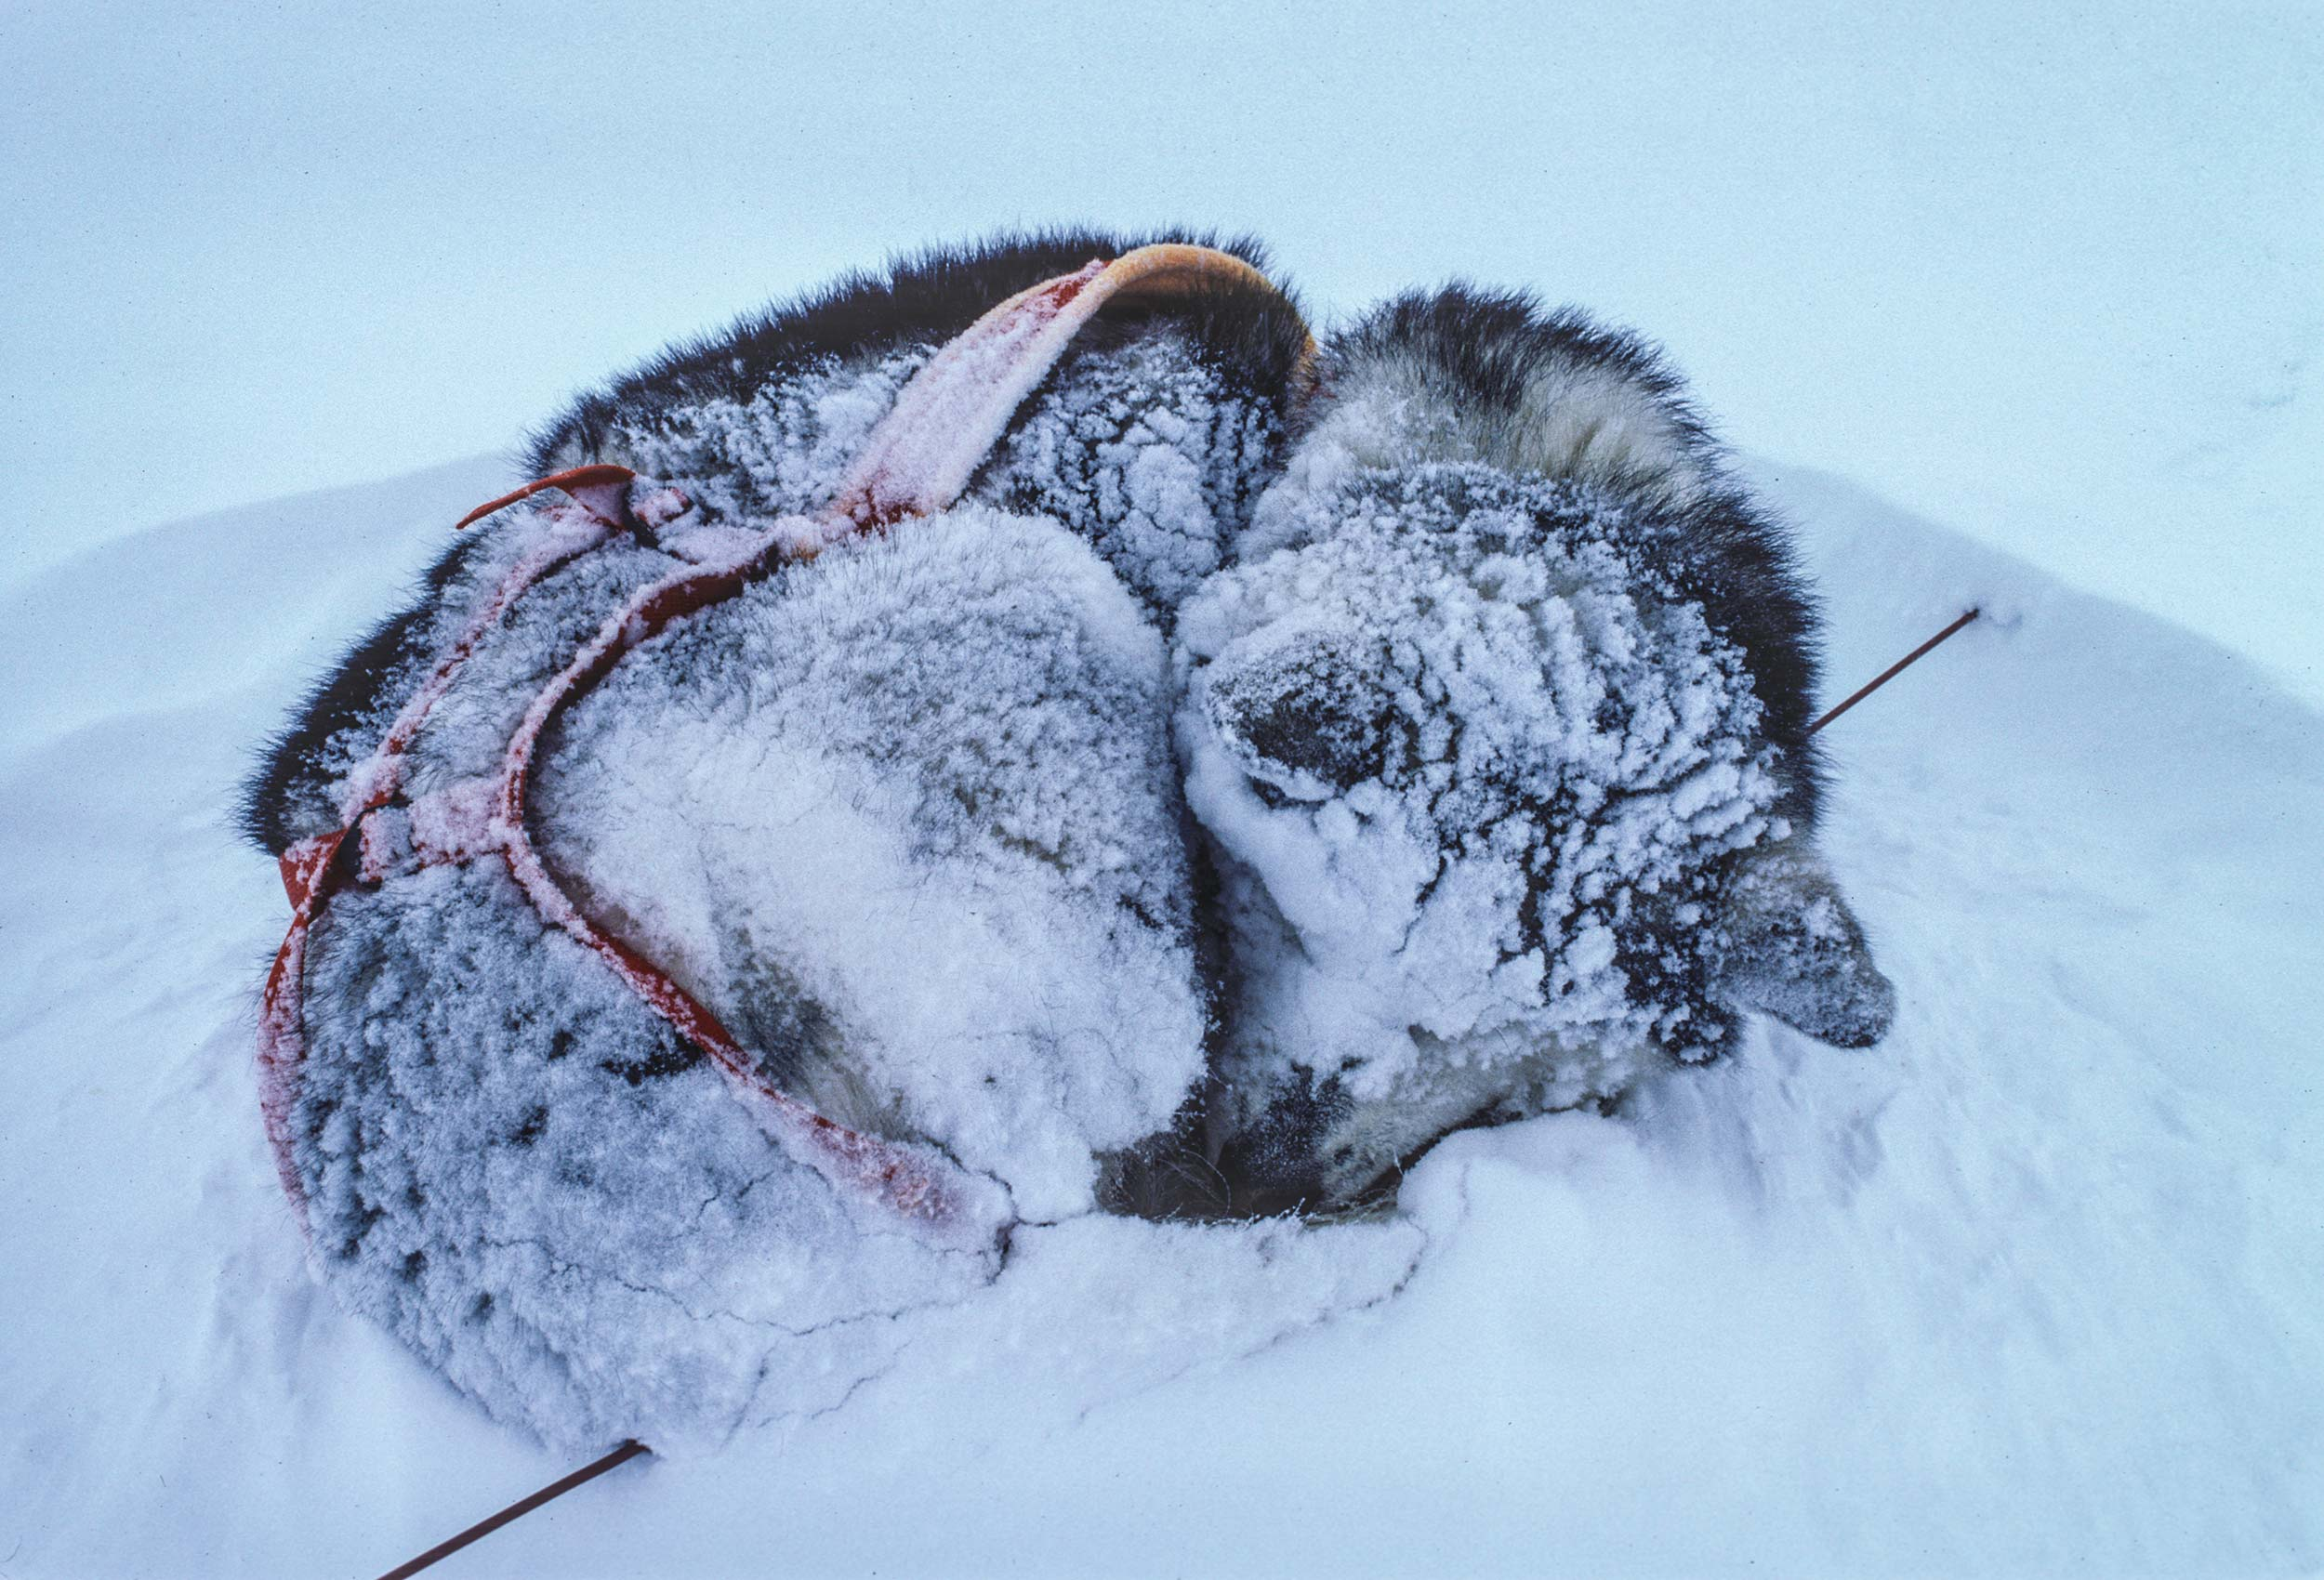 Trans-Antarctica-Expedition-sleeping-sled-dog